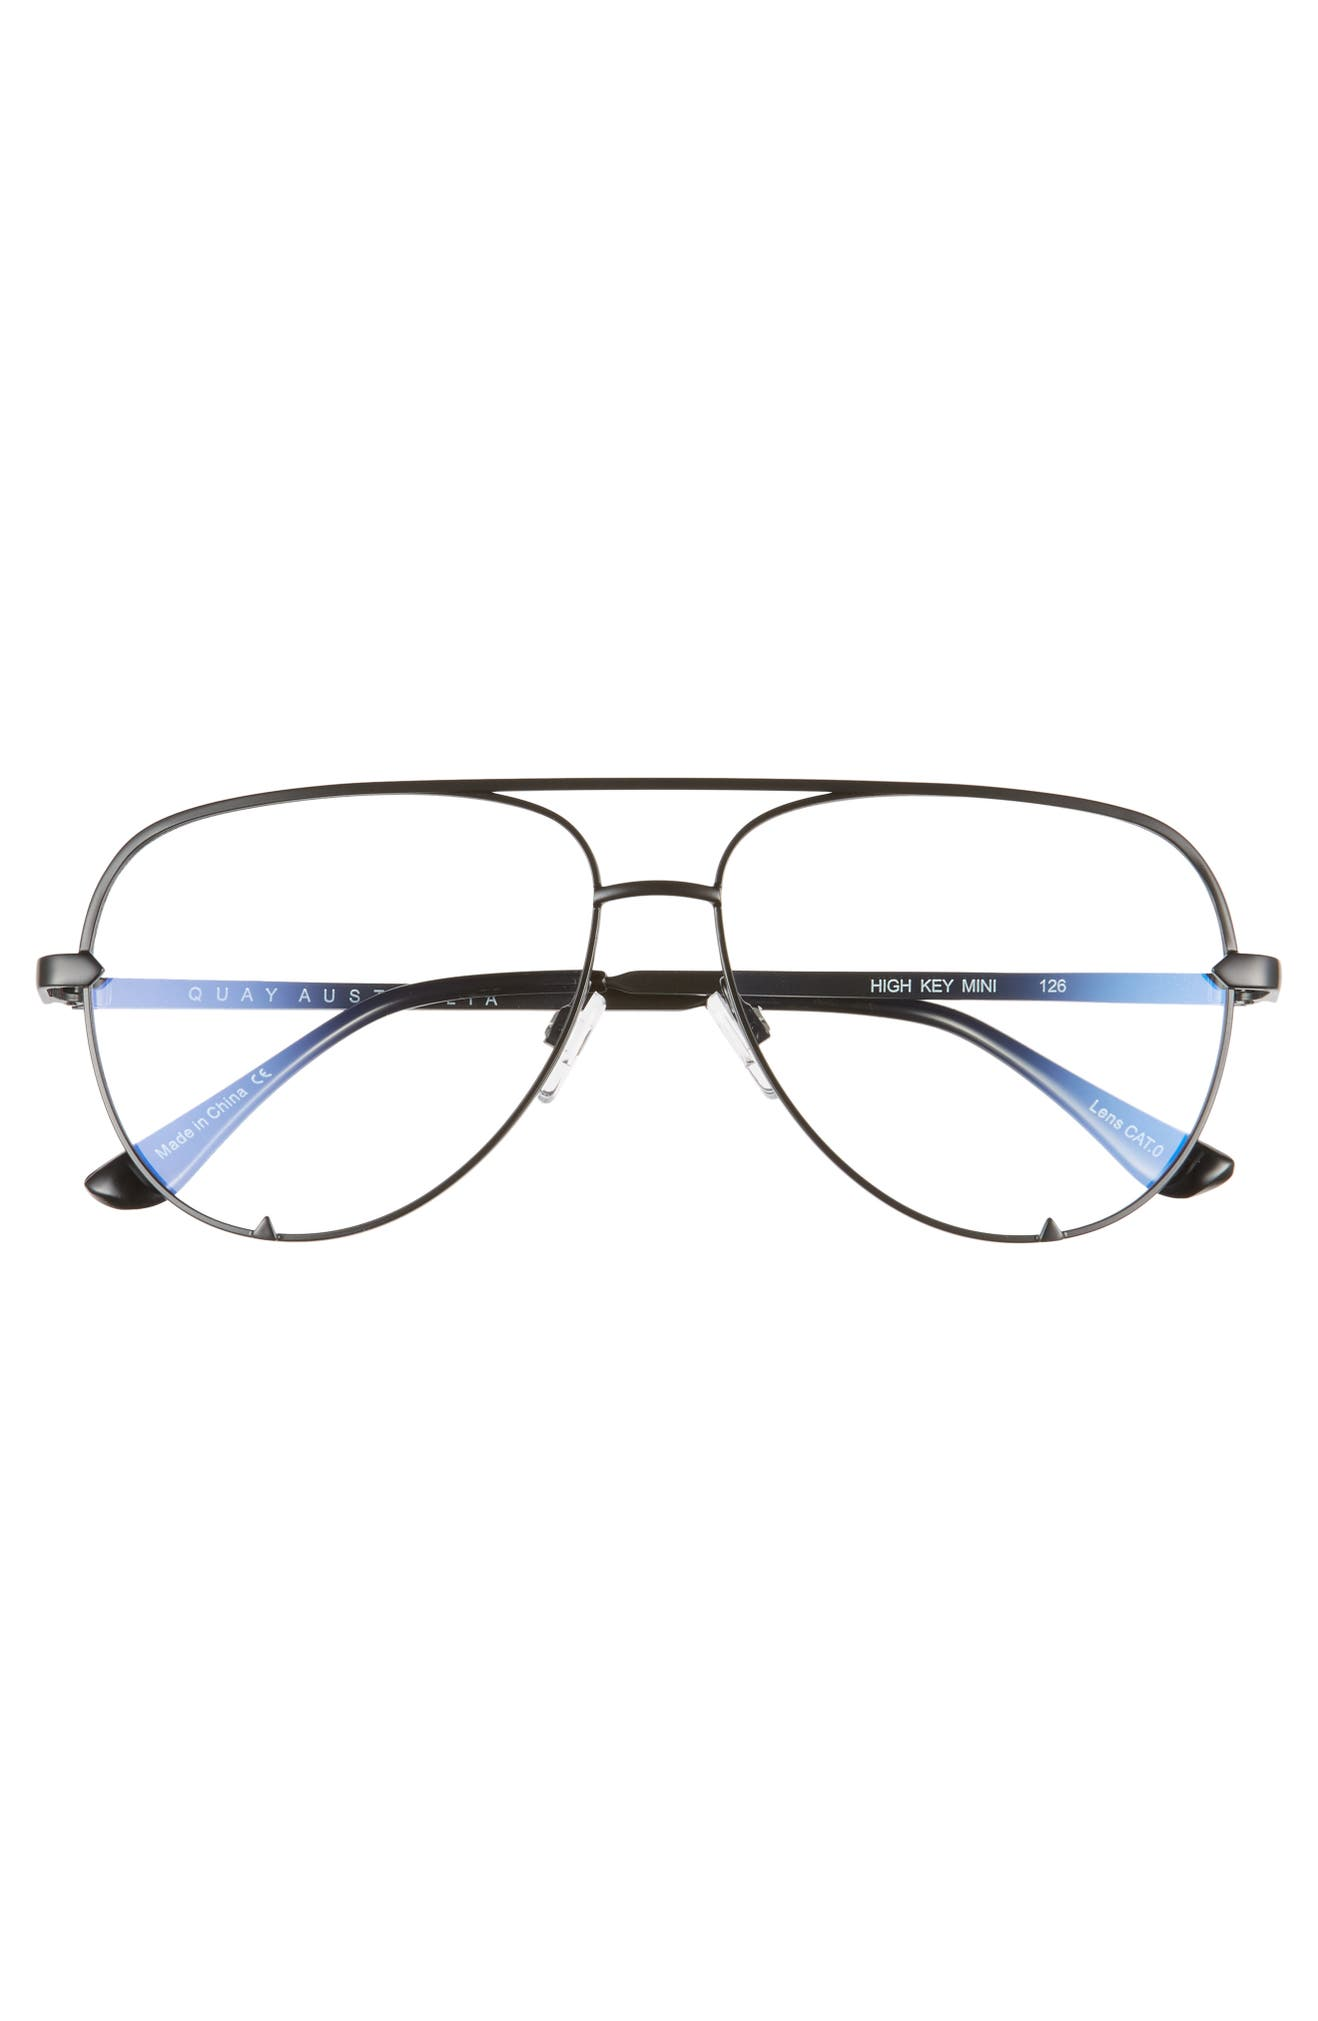 048a7888e58 Quay Australia High Key 58mm Blue Light Blocking Glasses